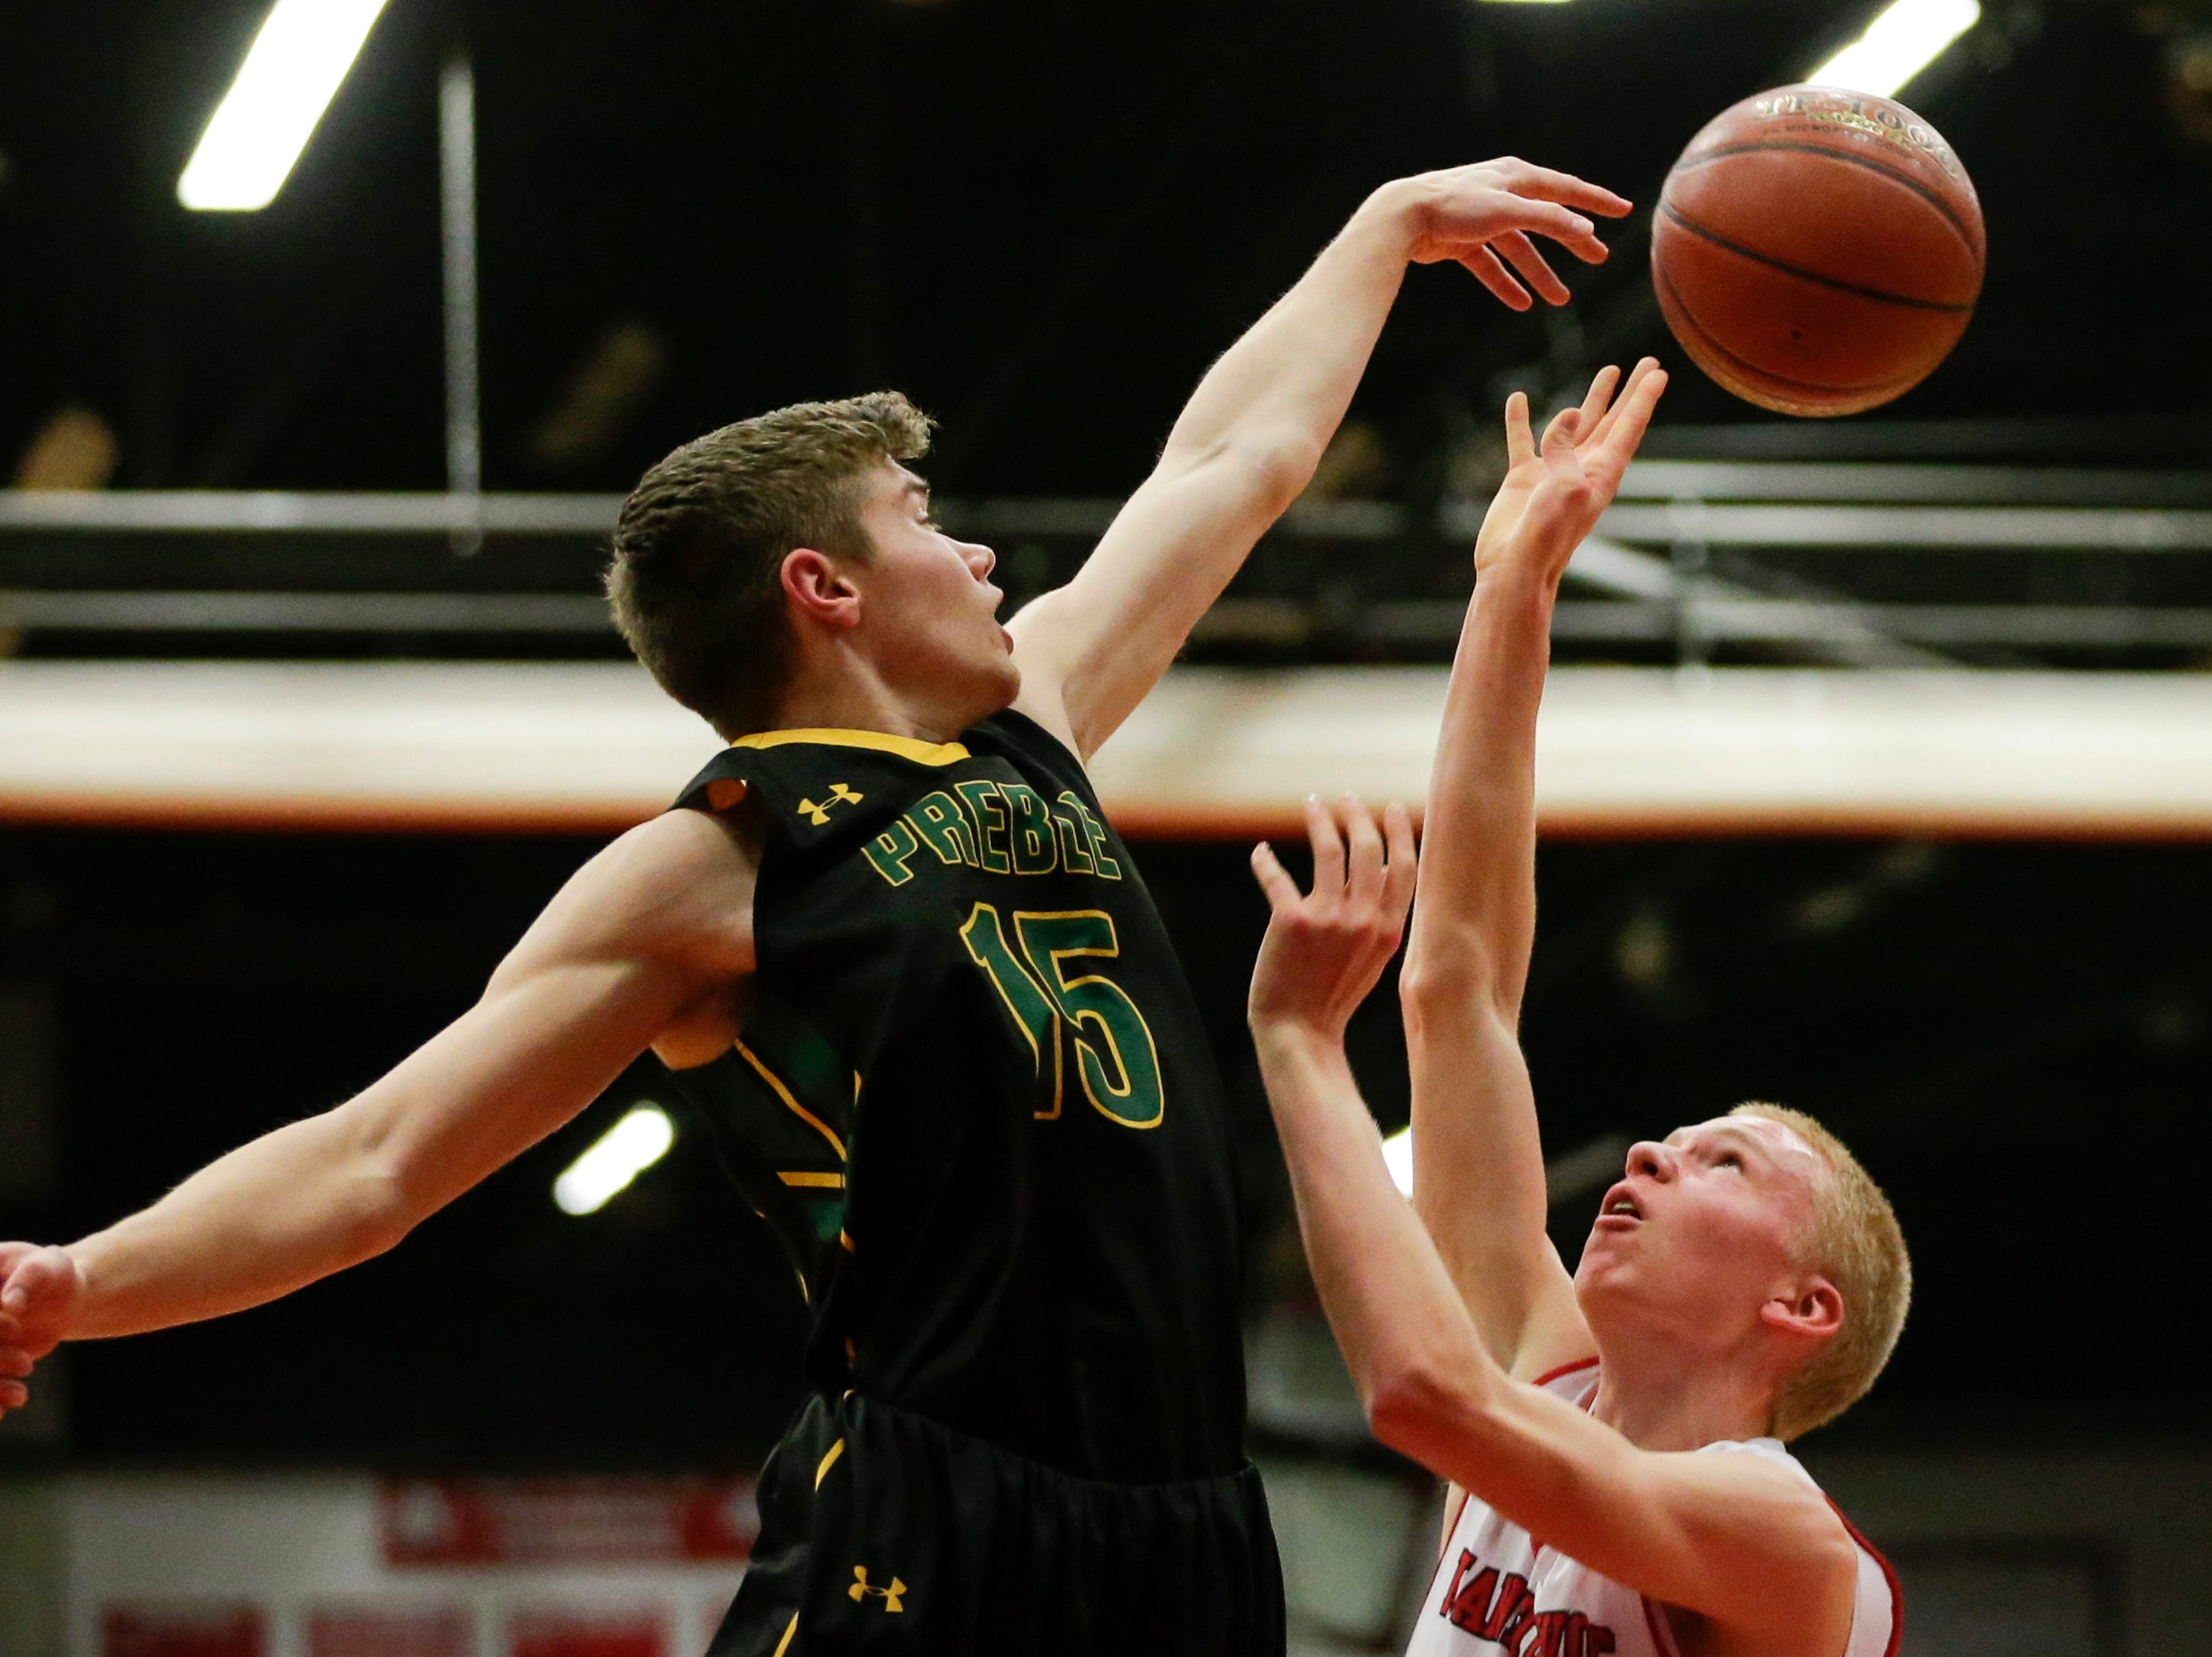 Green Bay Preble's Dominic Mariucci (15) blocks a shot from Manitowoc Lincoln's Sam Jacobson (13) during boys FRCC basketball at Manitowoc Lincoln High School Friday, December 21, 2018, in Manitowoc, Wis. Joshua Clark/USA TODAY NETWORK-Wisconsin